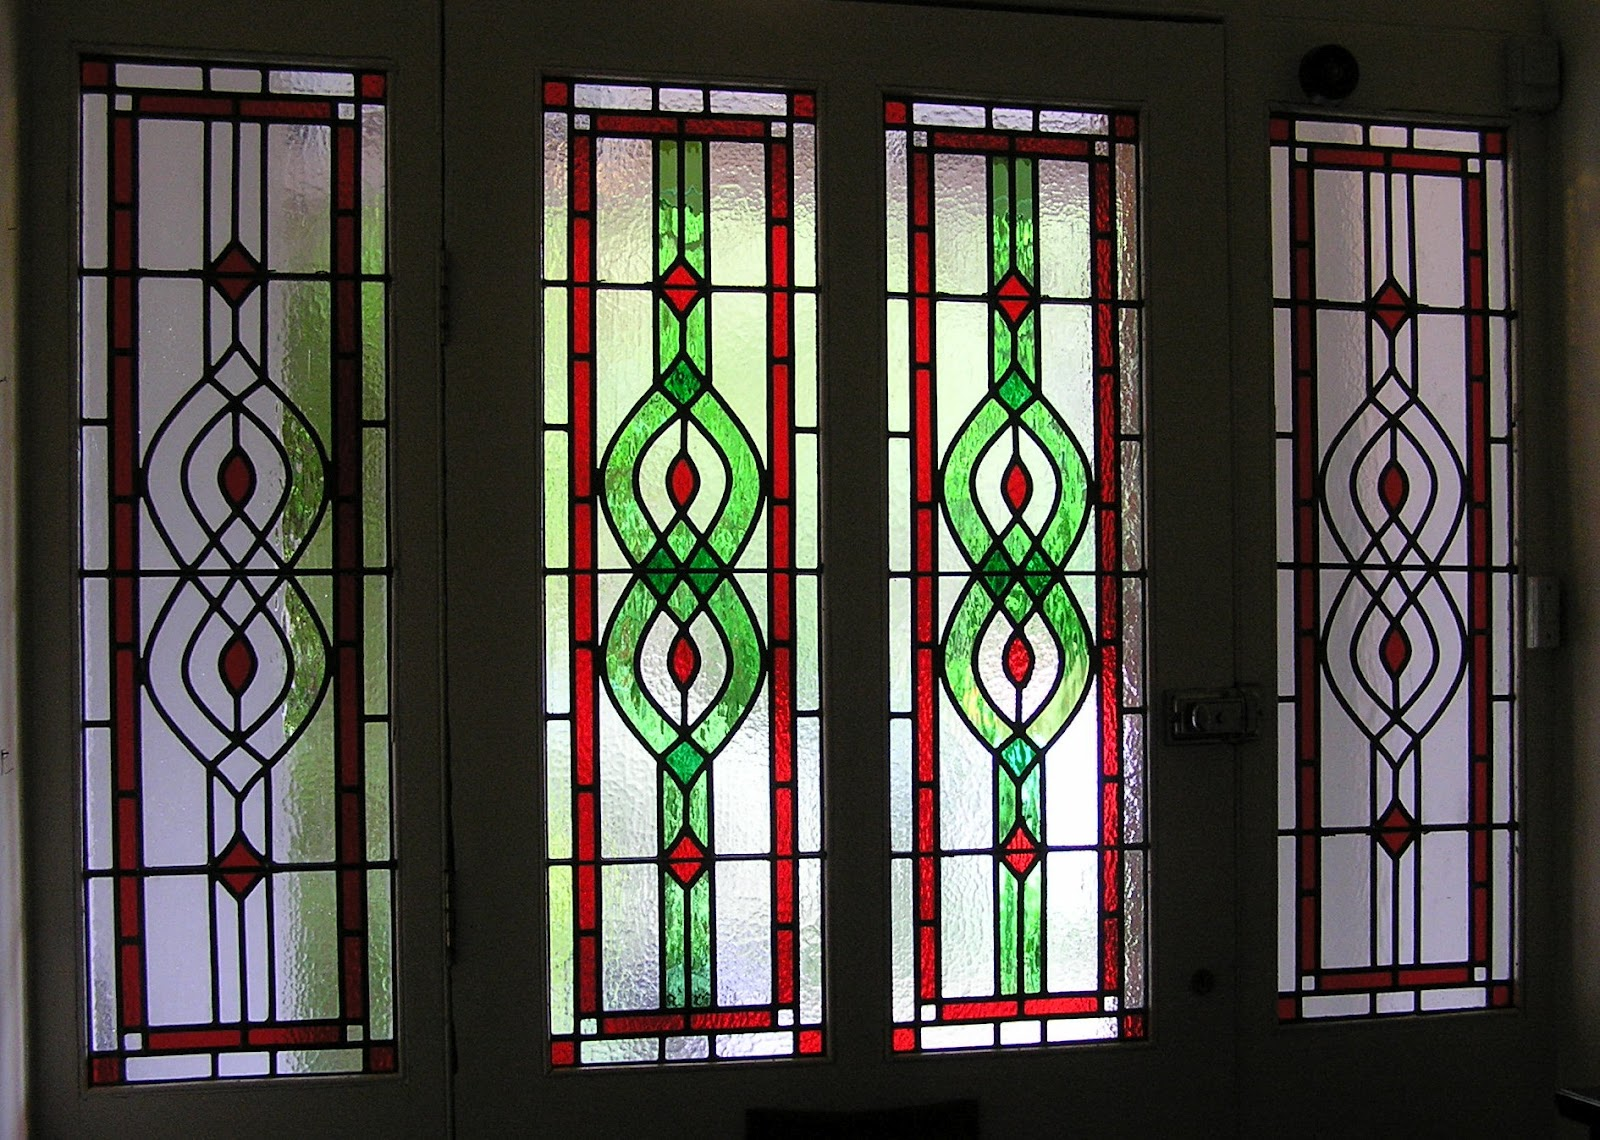 Stained glass for london and south east this new set of 4 leaded door panels were commissioned to replace earlier imitation stained glass panels our client suggested using the existing wrought eventelaan Gallery